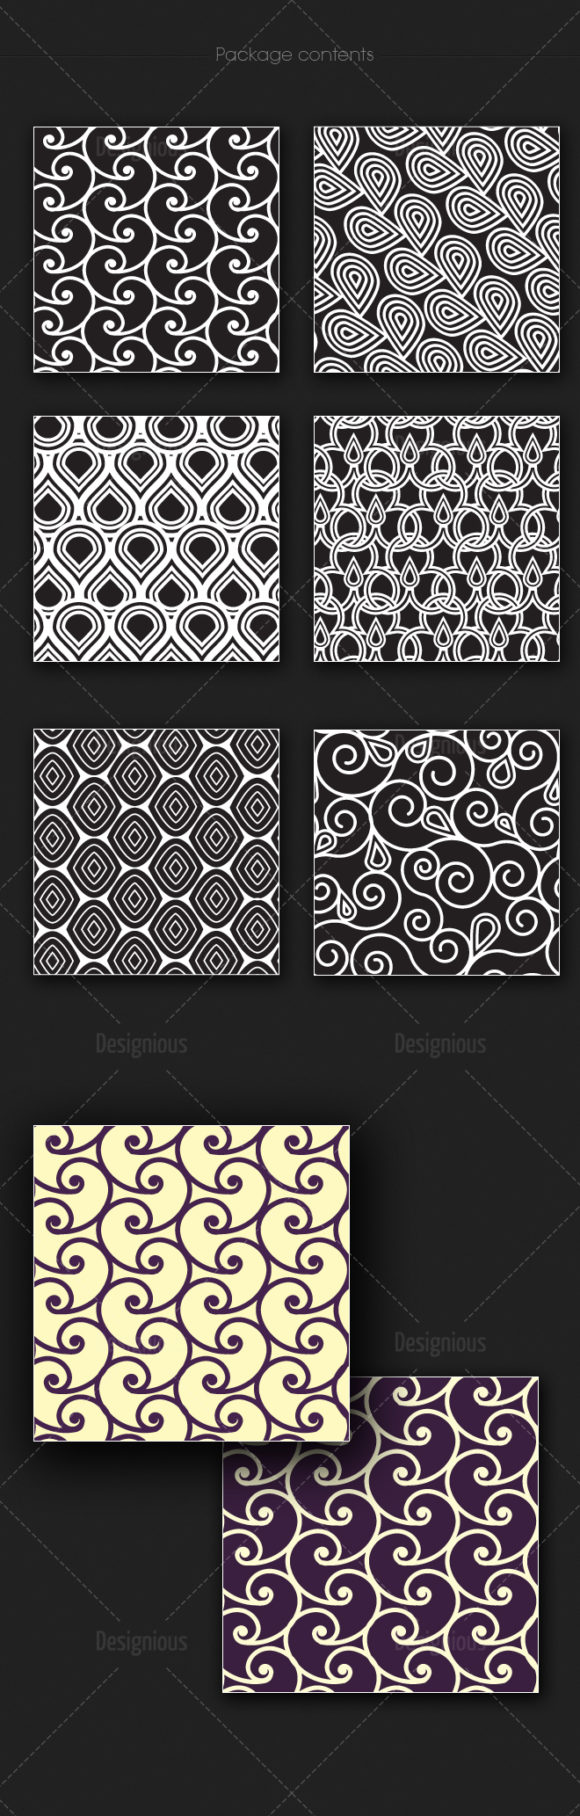 Seamless Patterns Vector Pack 173 6